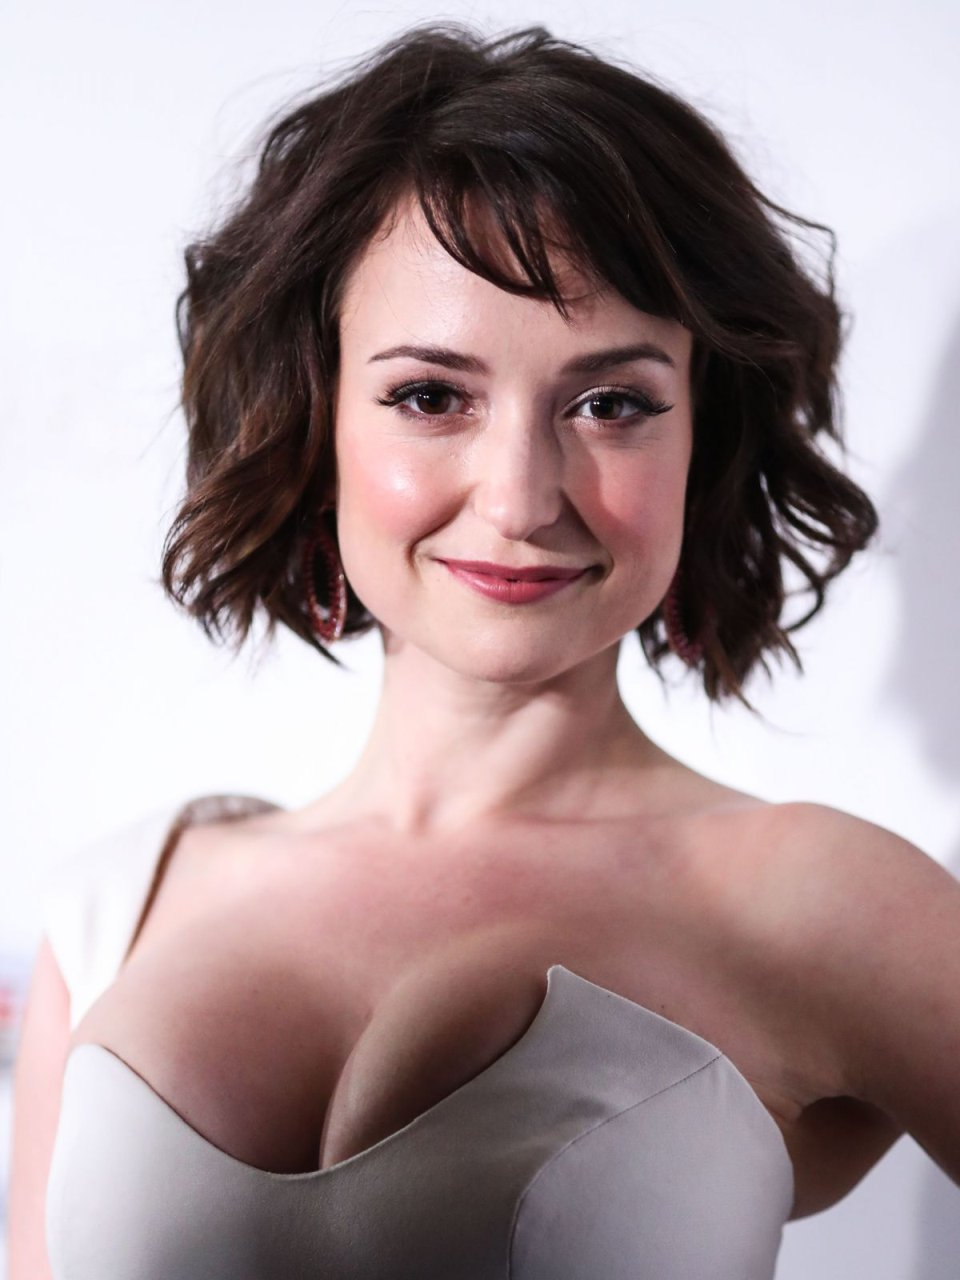 Milana vayntrub nude pics videos that you must see